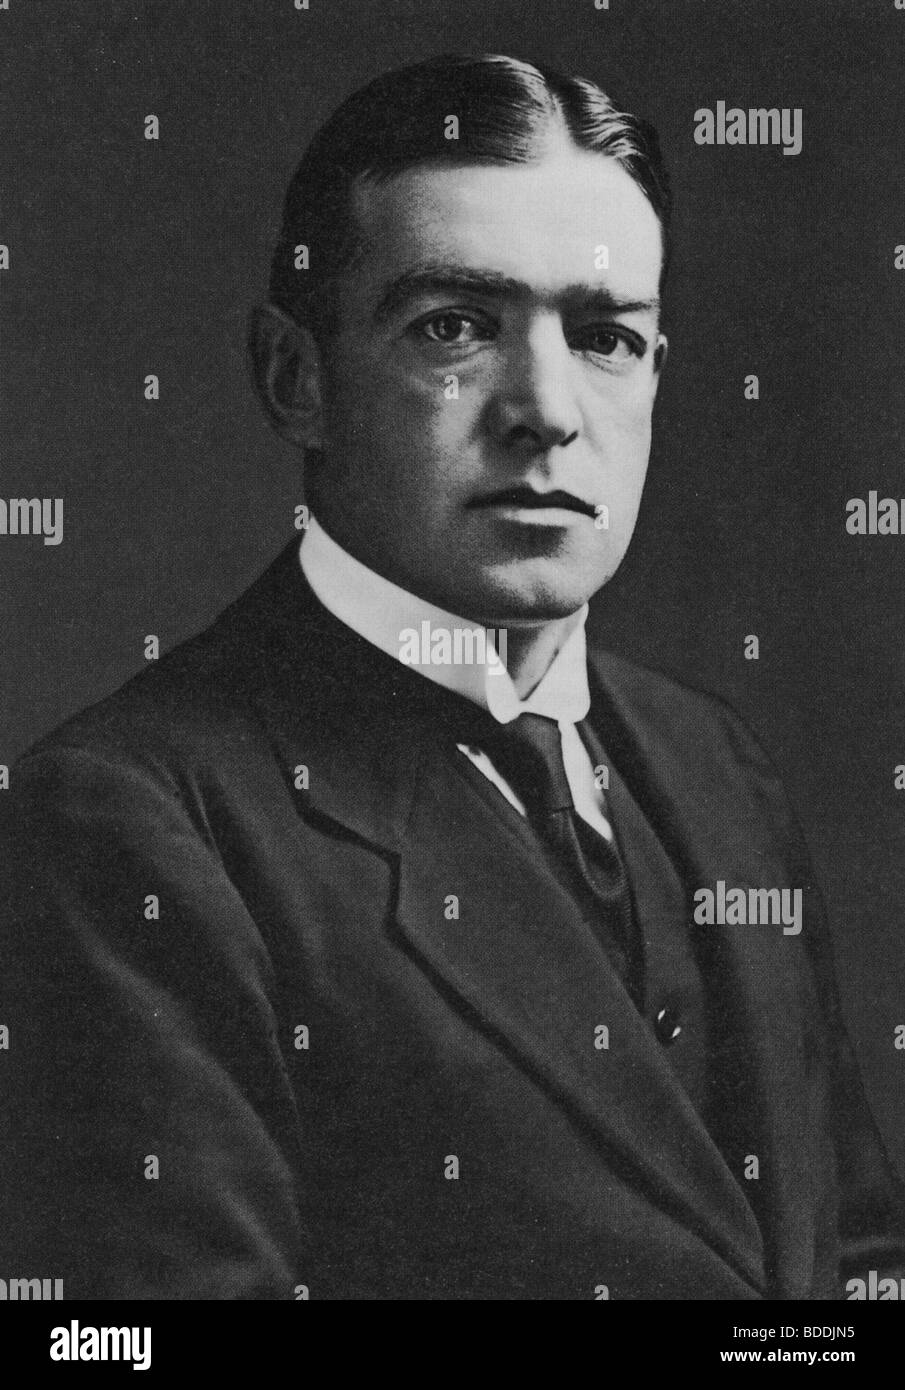 SIR ERNEST SHACKLETON  (1874-1922)  UK arctic explorer - Stock Image